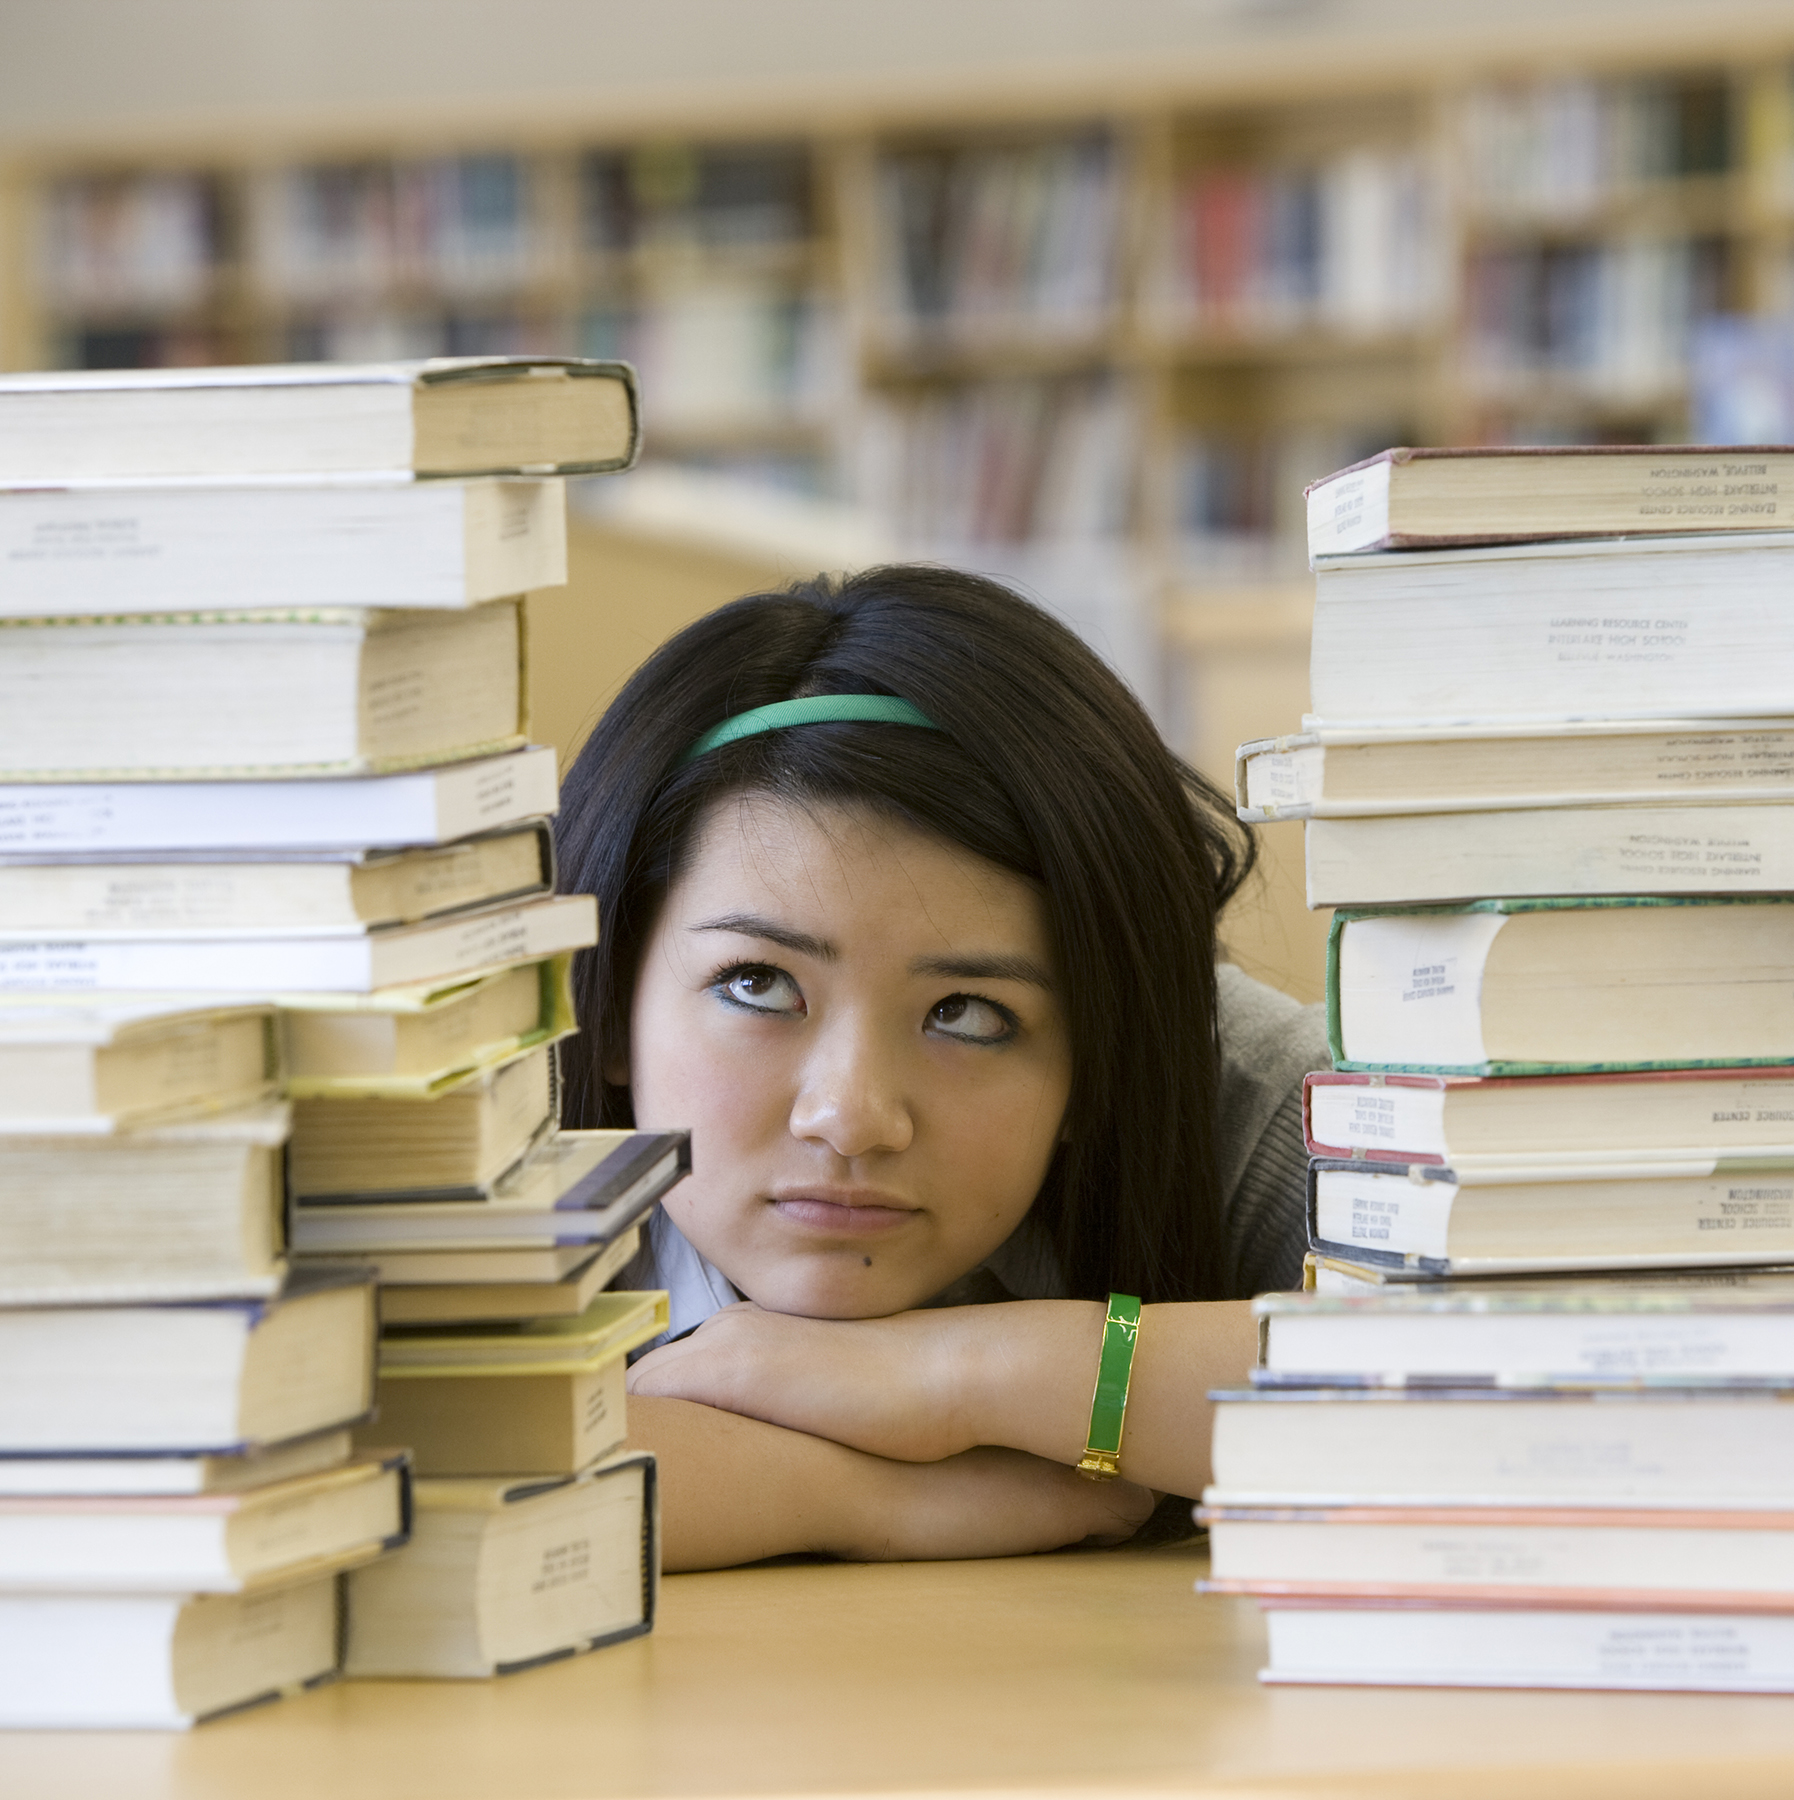 Teenager with stacks of books